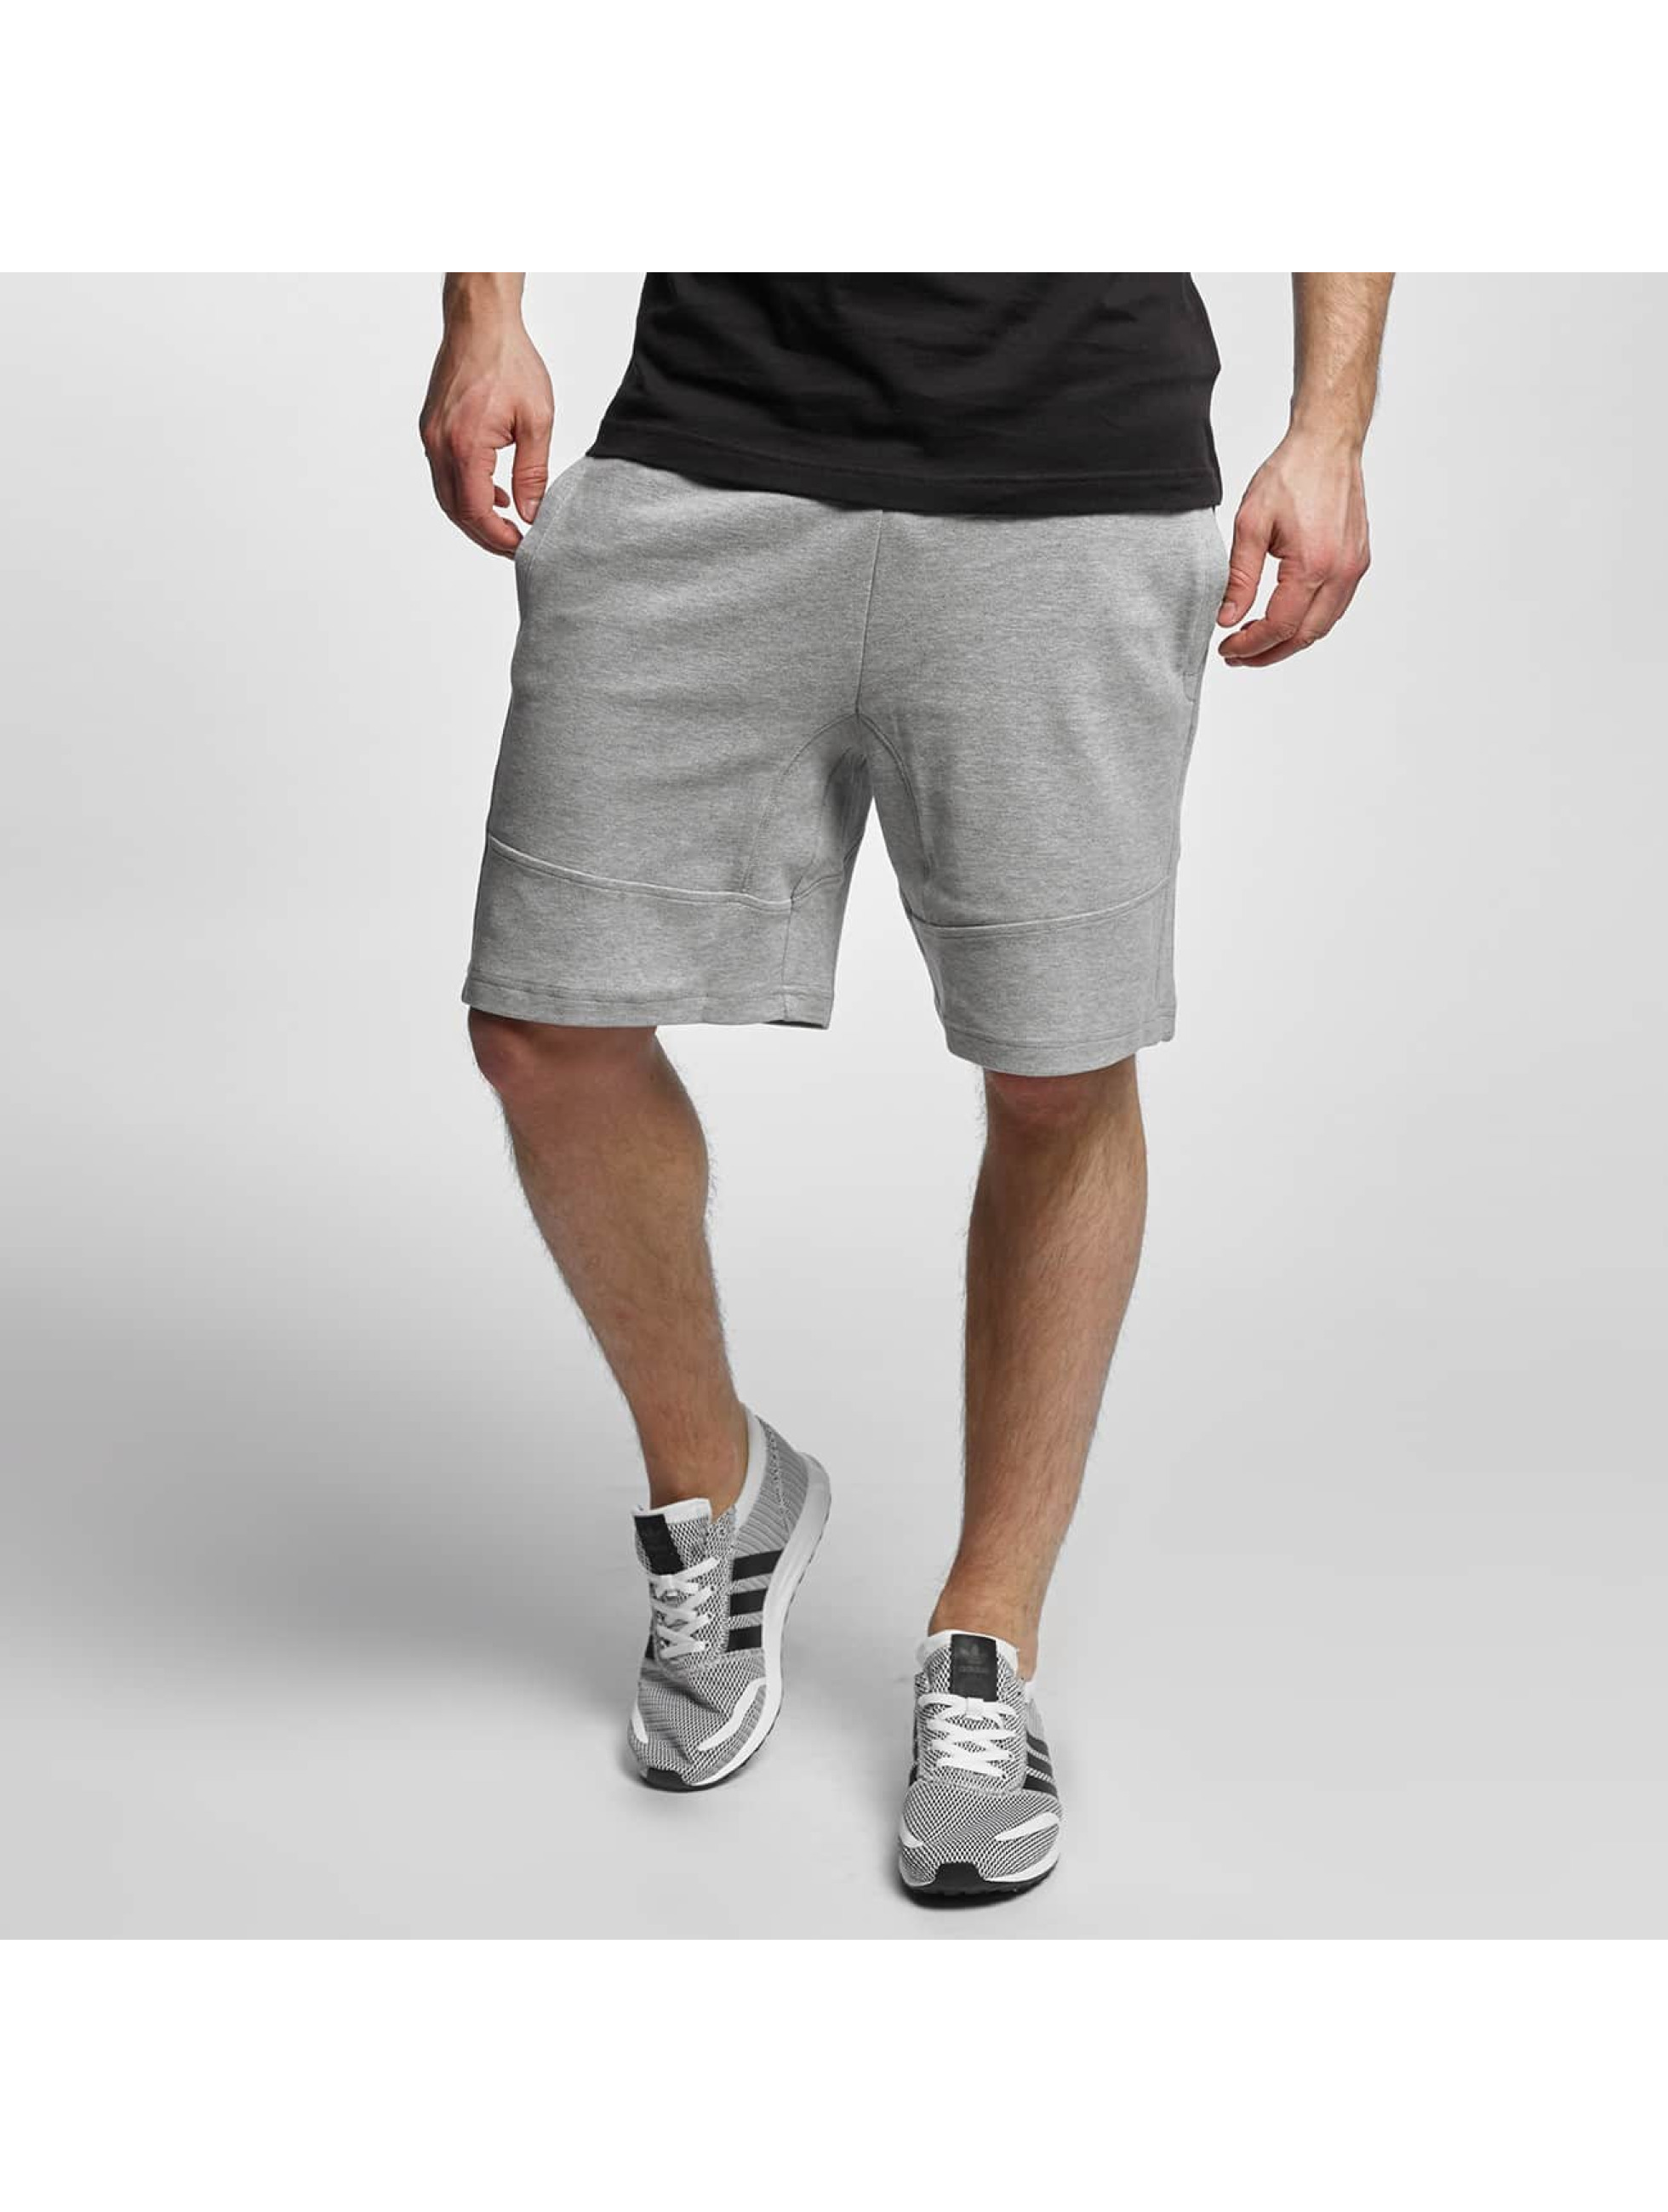 Urban Classics Short Interlock grey